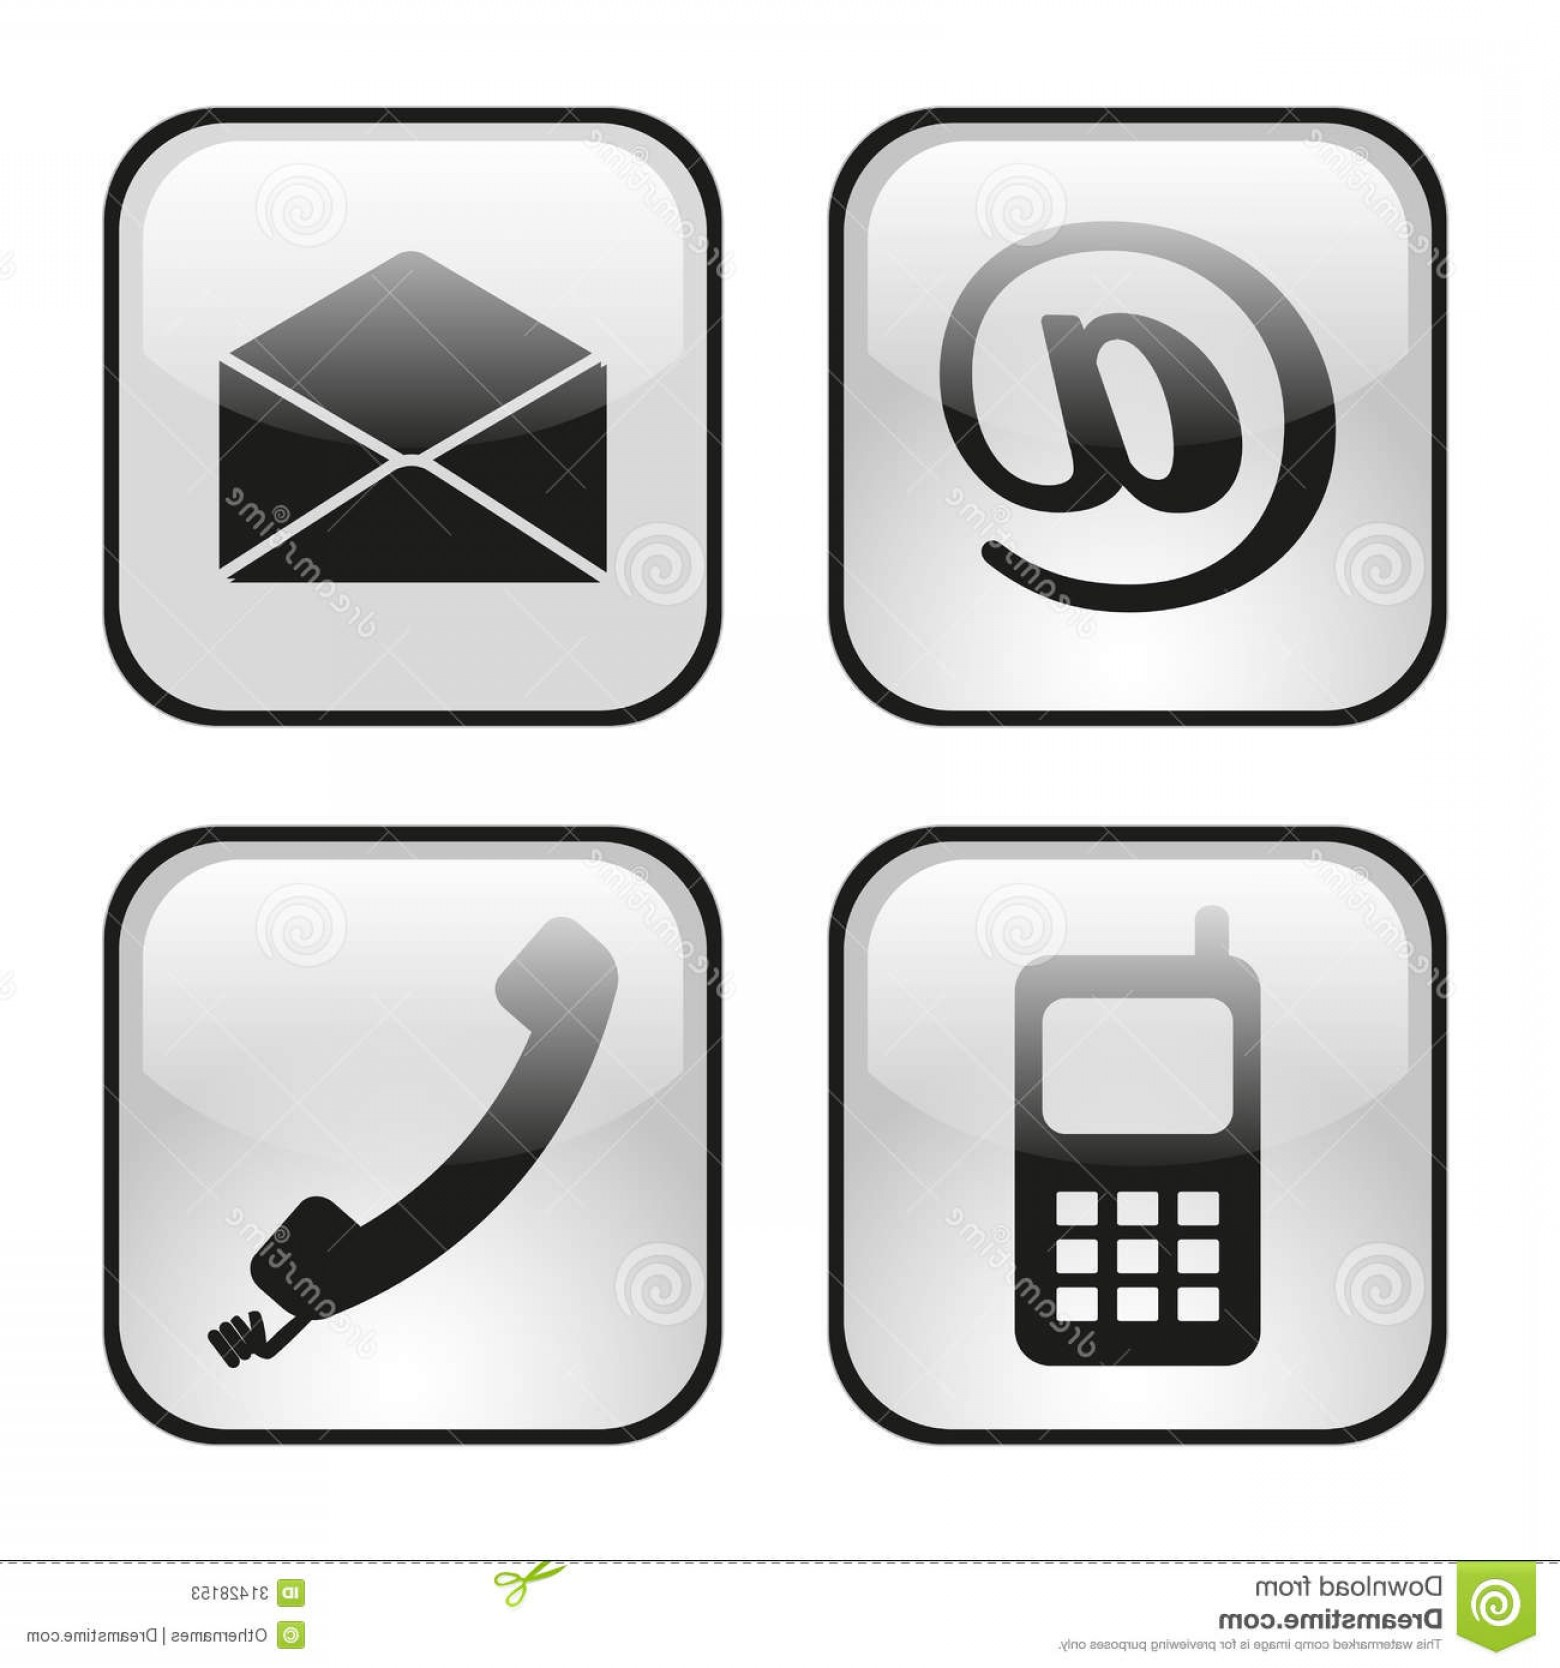 Contact Button Icons Vector Free: Stock Photos Web Internet Icons Set Contact Buttons Email Envelope Phone Mobile Image